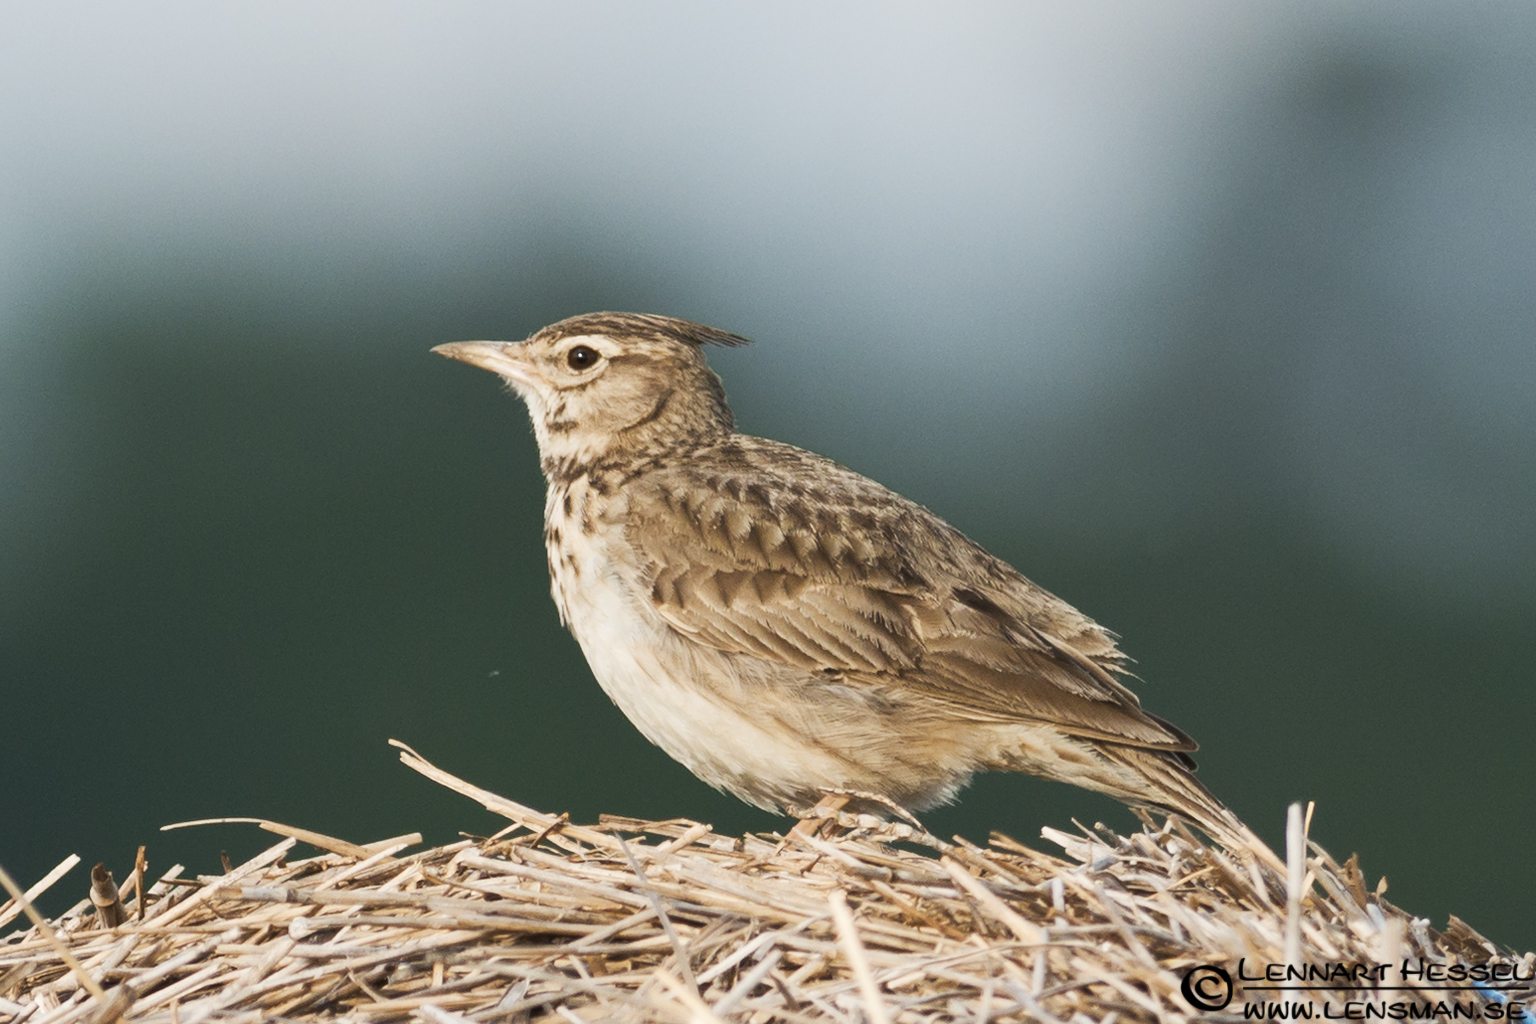 Crested Lark in Hungary